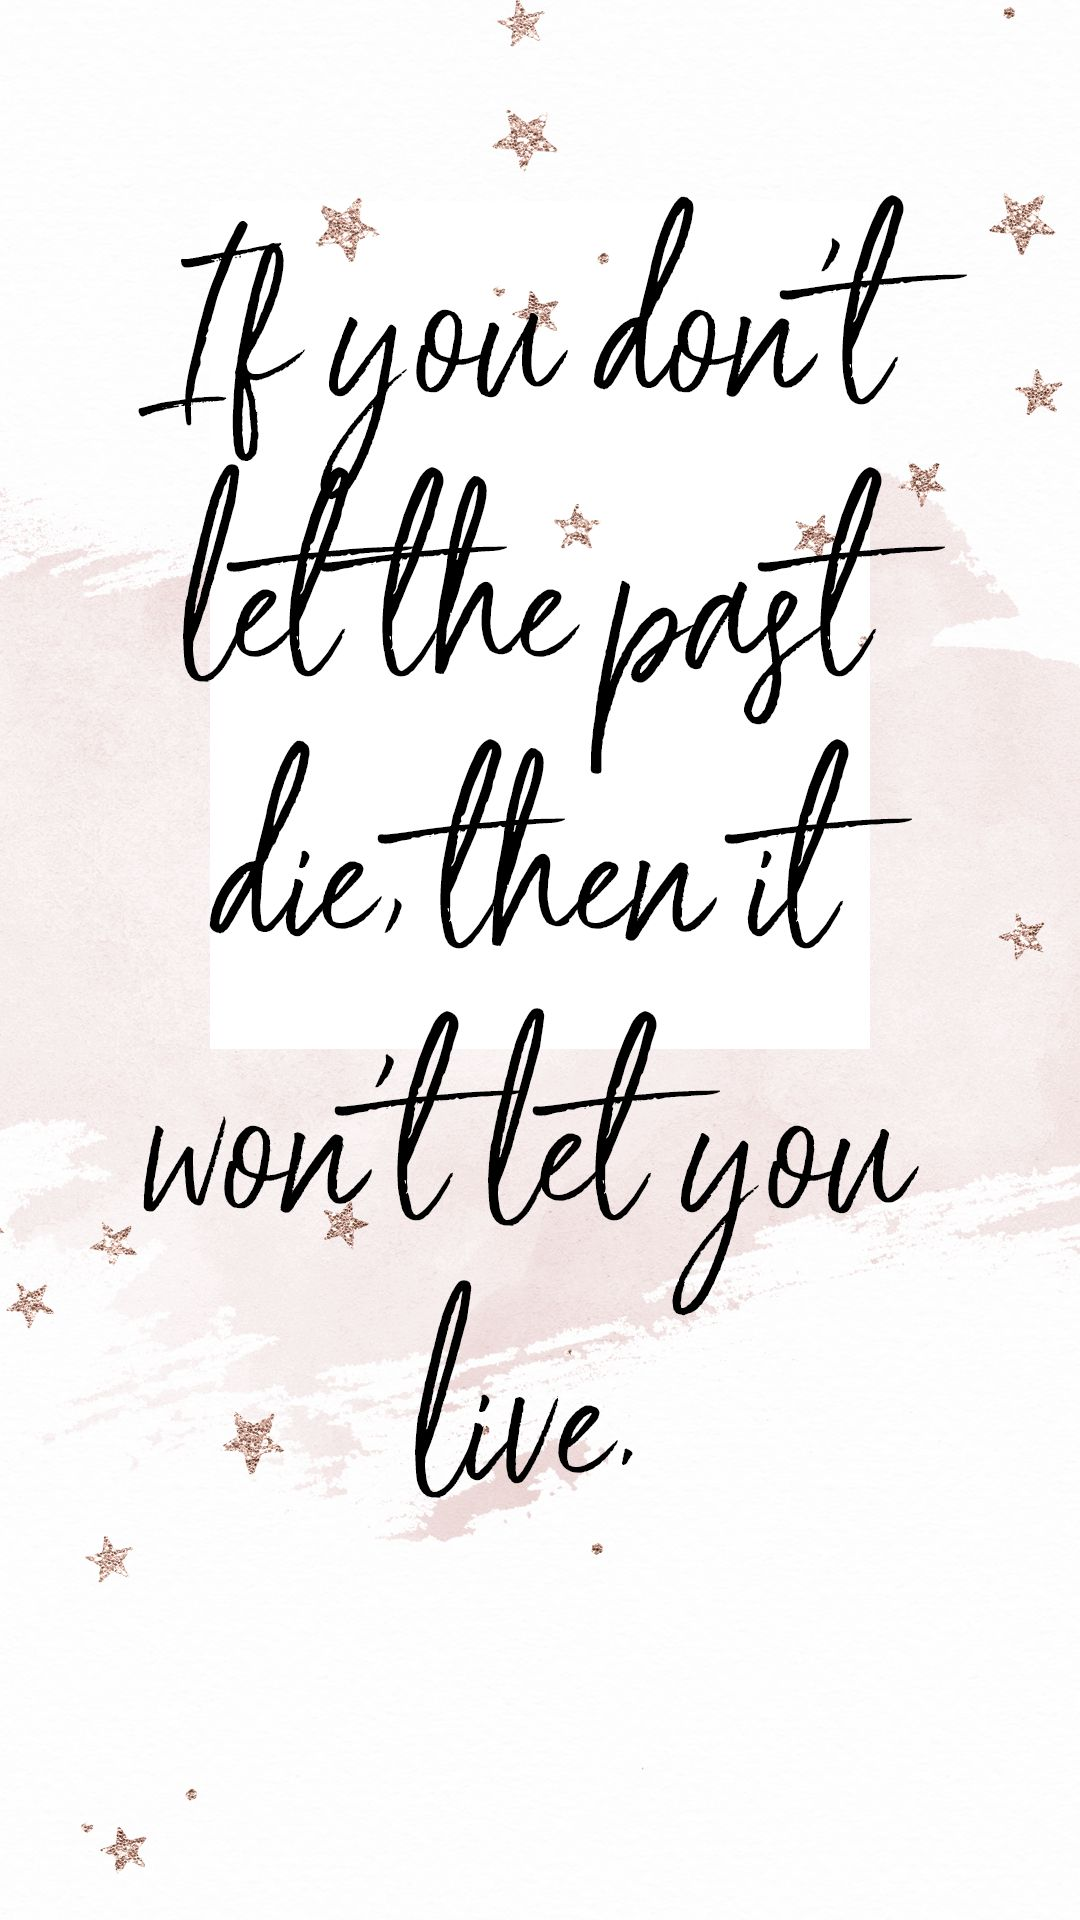 Don't hold onto the past...